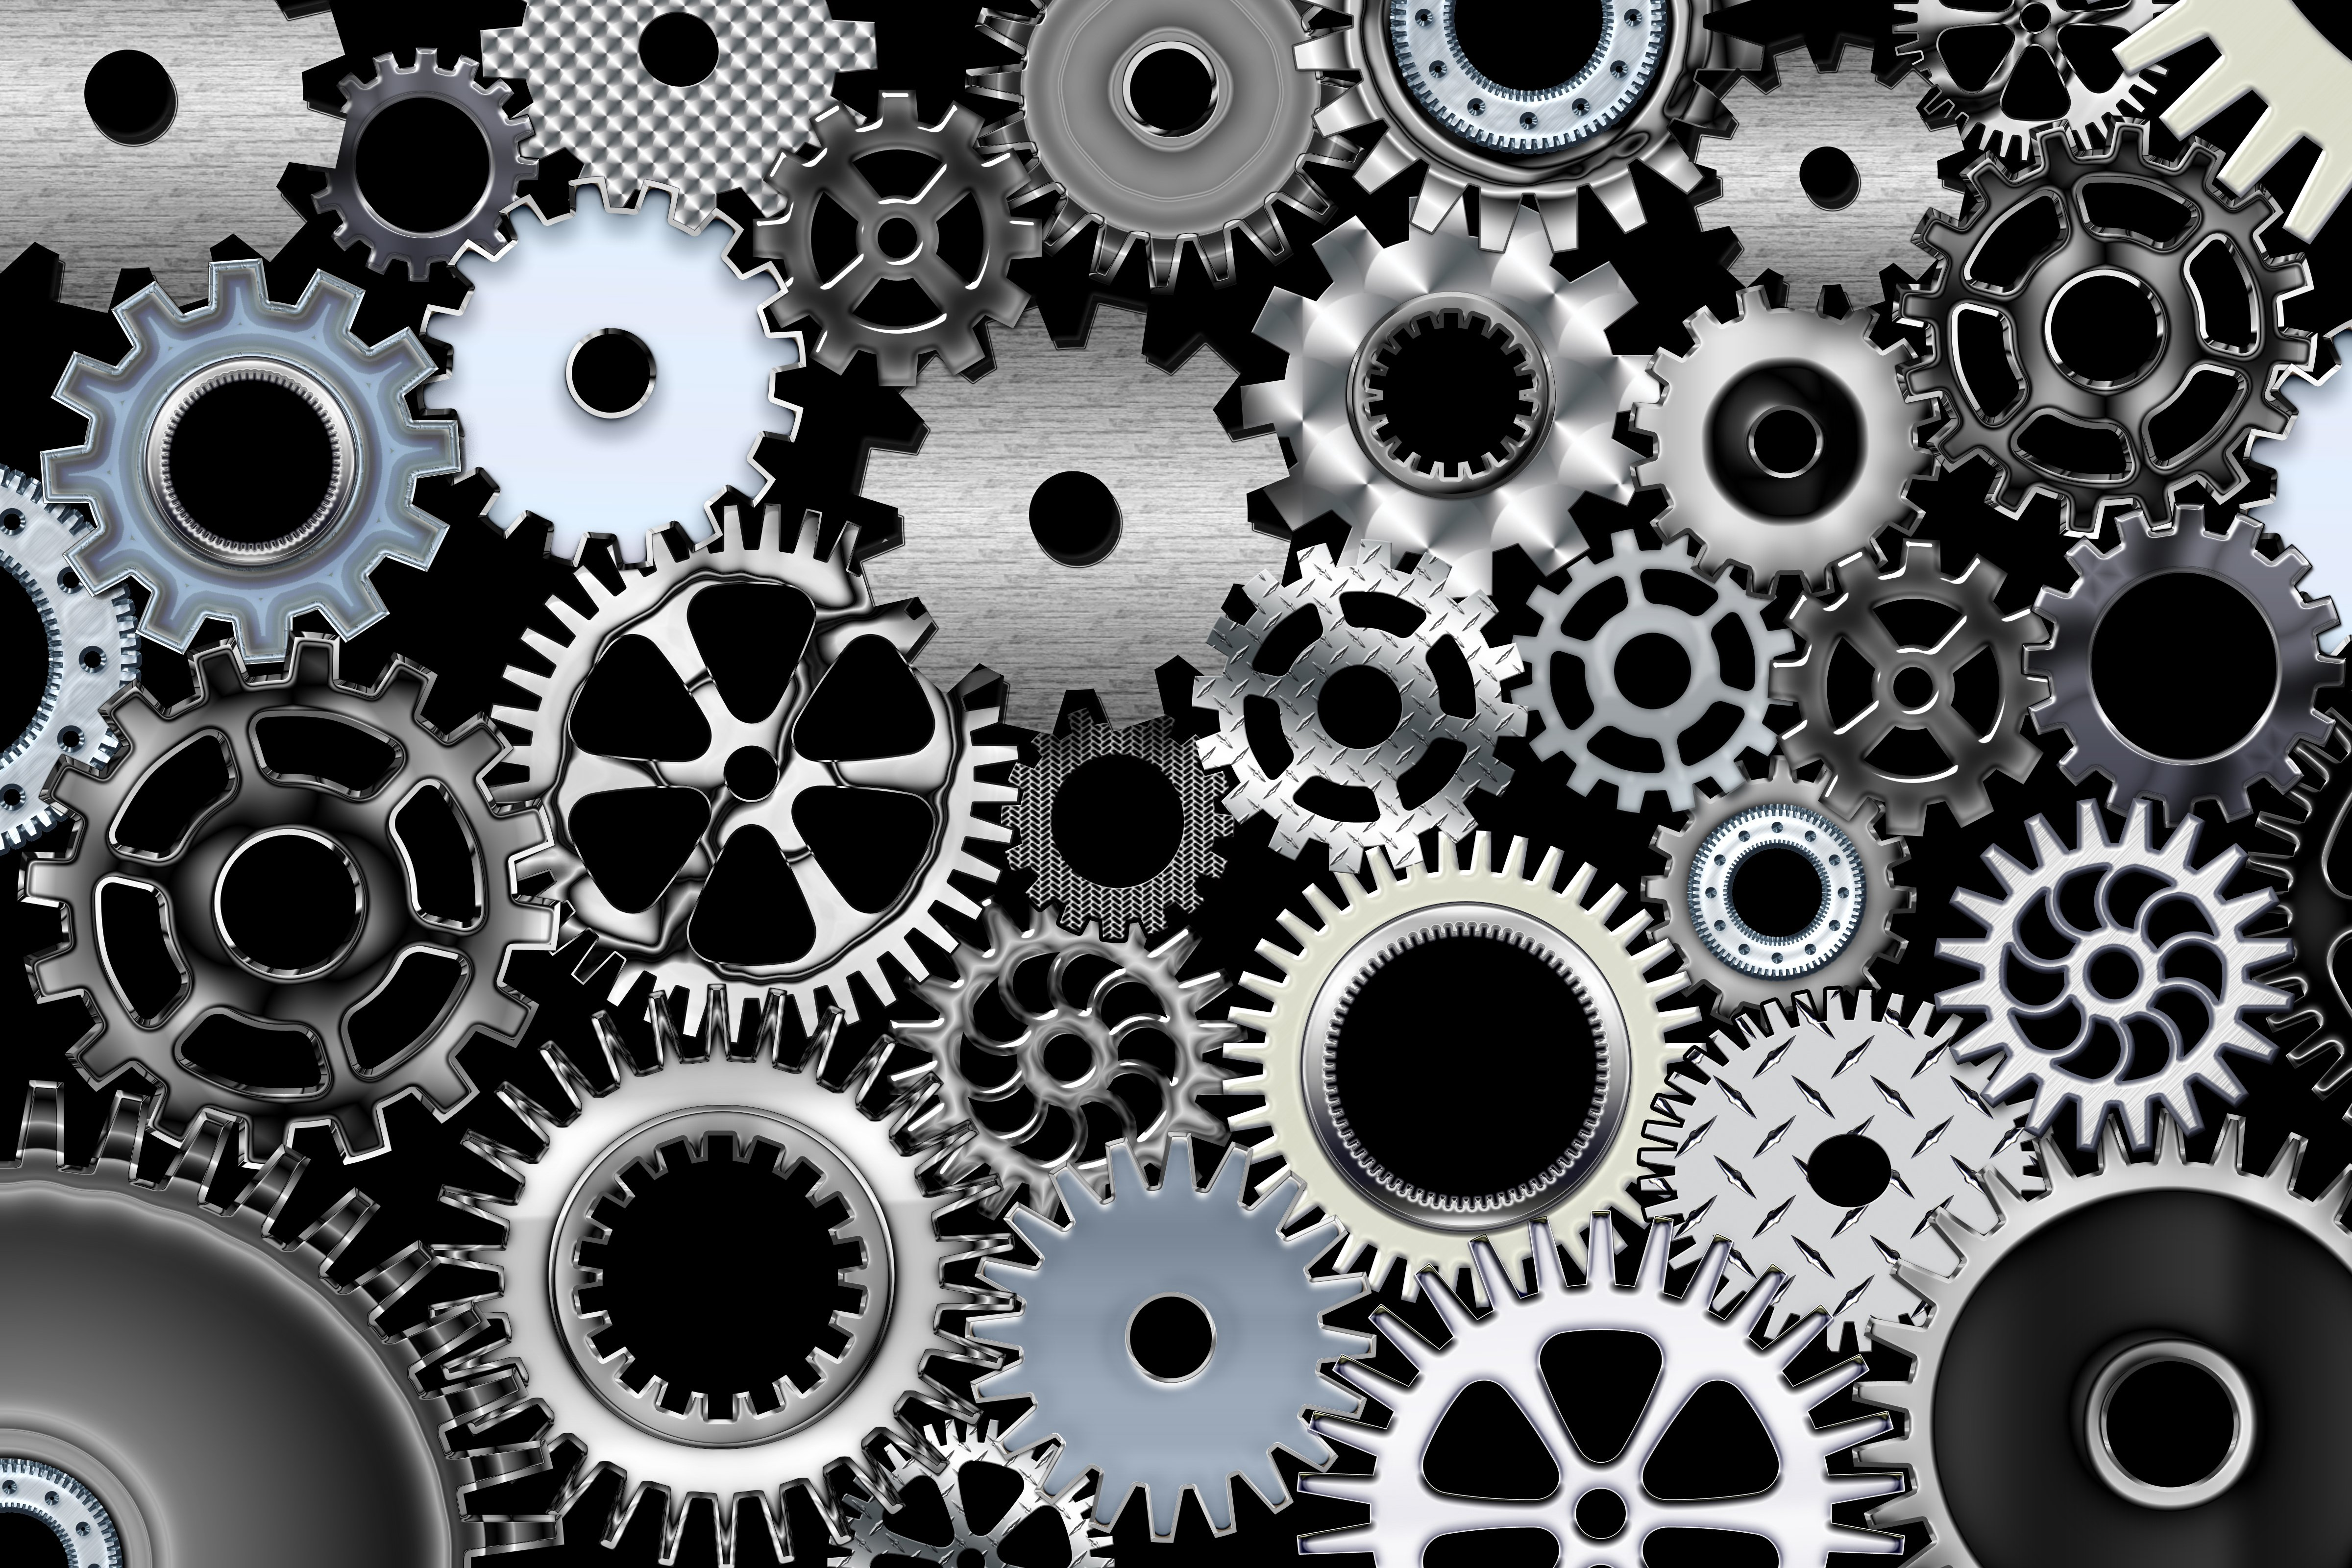 Mechanical Engineering Wallpapers for PC - WallpaperSafari